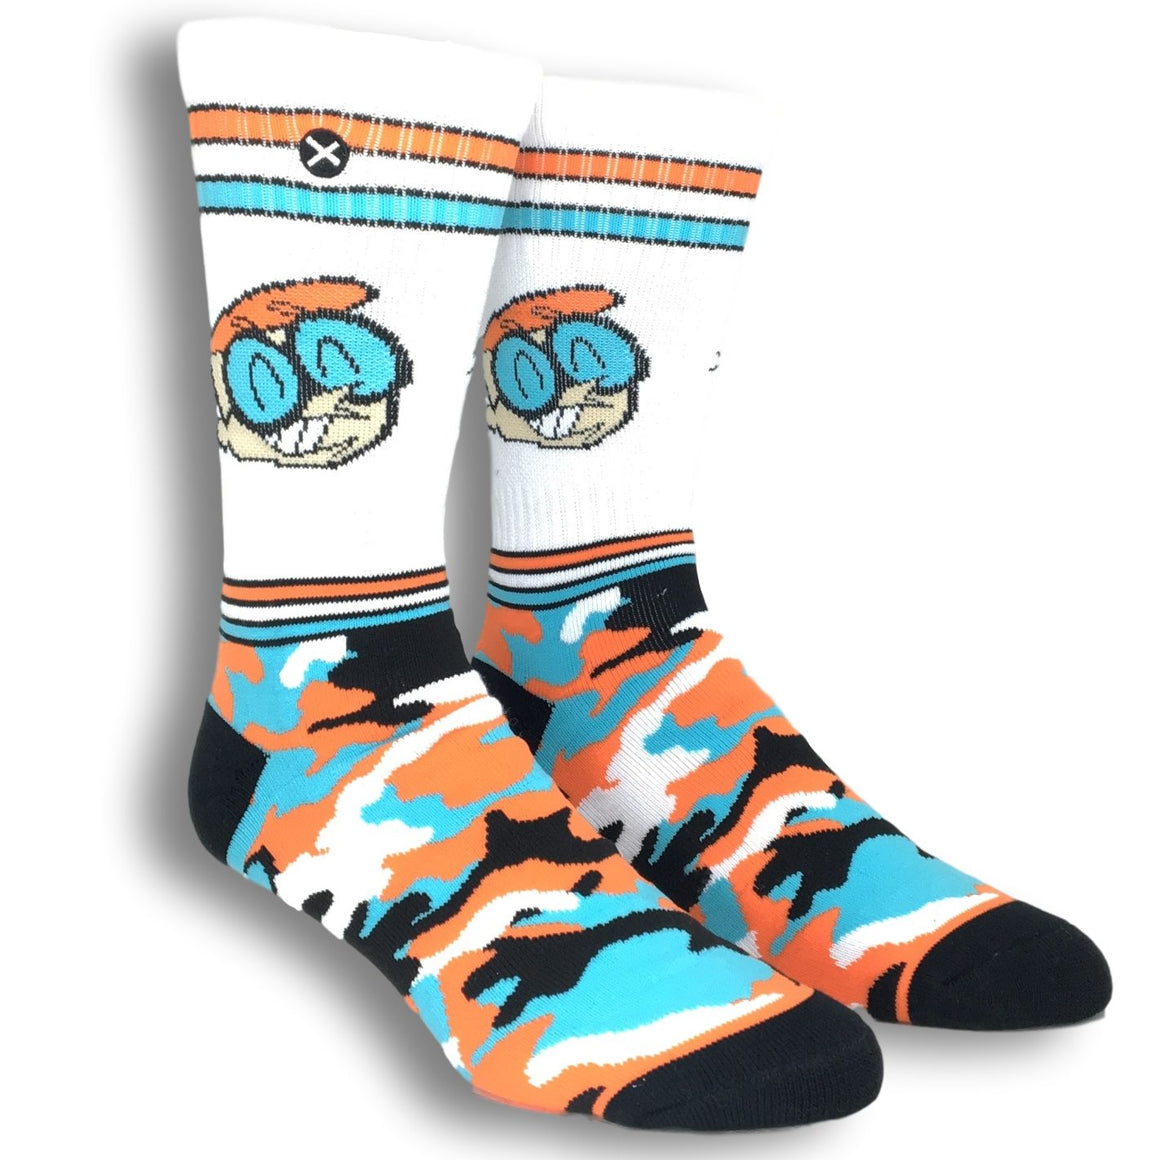 Cartoon Network Dexter's Laboratory Camo Athletic Socks by Odd Sox - The Sock Spot